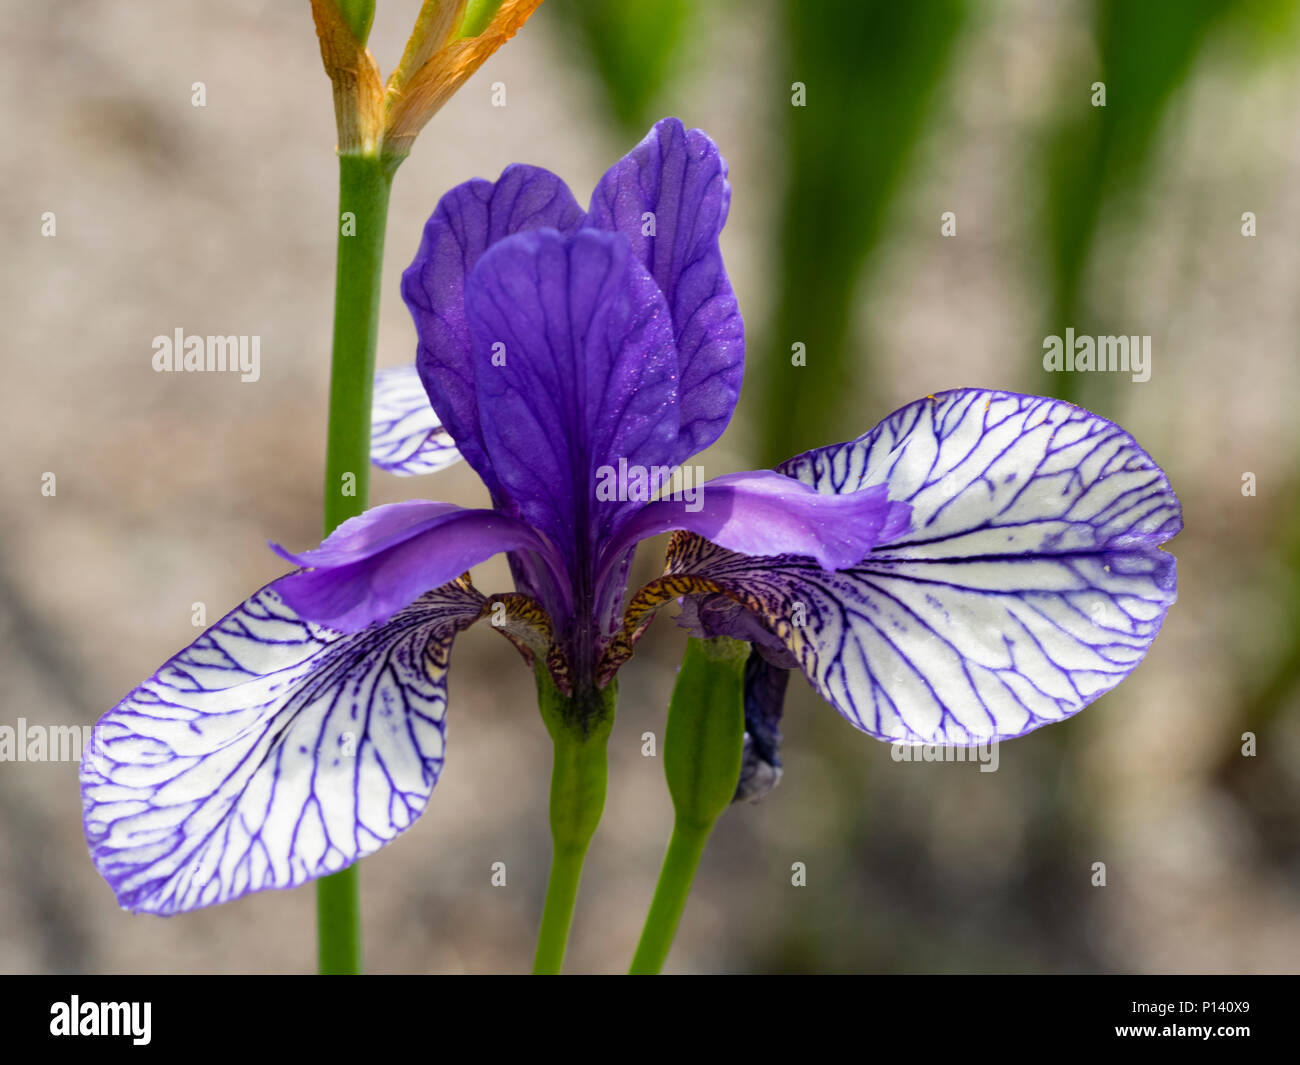 Blue netted falls and blue standards of the Siberian iris, Iris sibirica 'Flight of Butterflies' - Stock Image